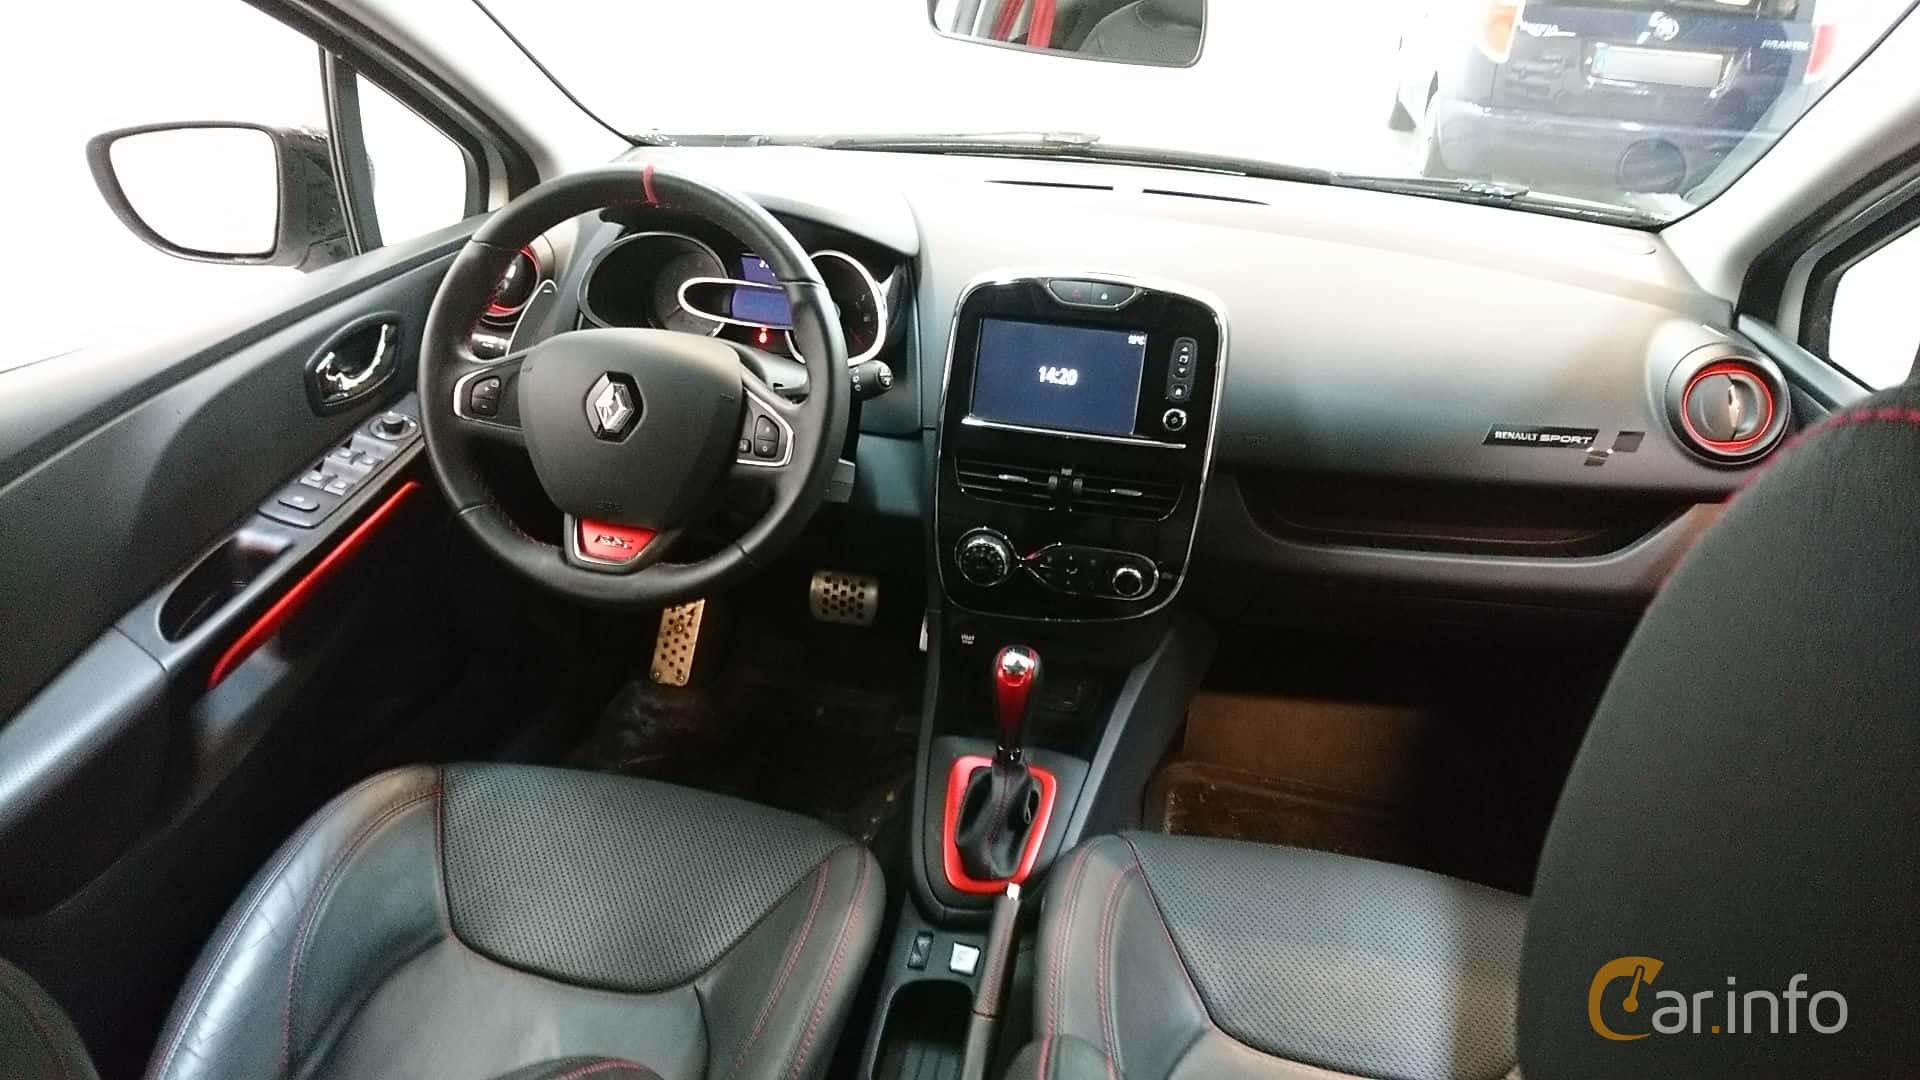 Renault Clio Rs 1 6 Tce Edc 200hp 2015 Tradingsolutions